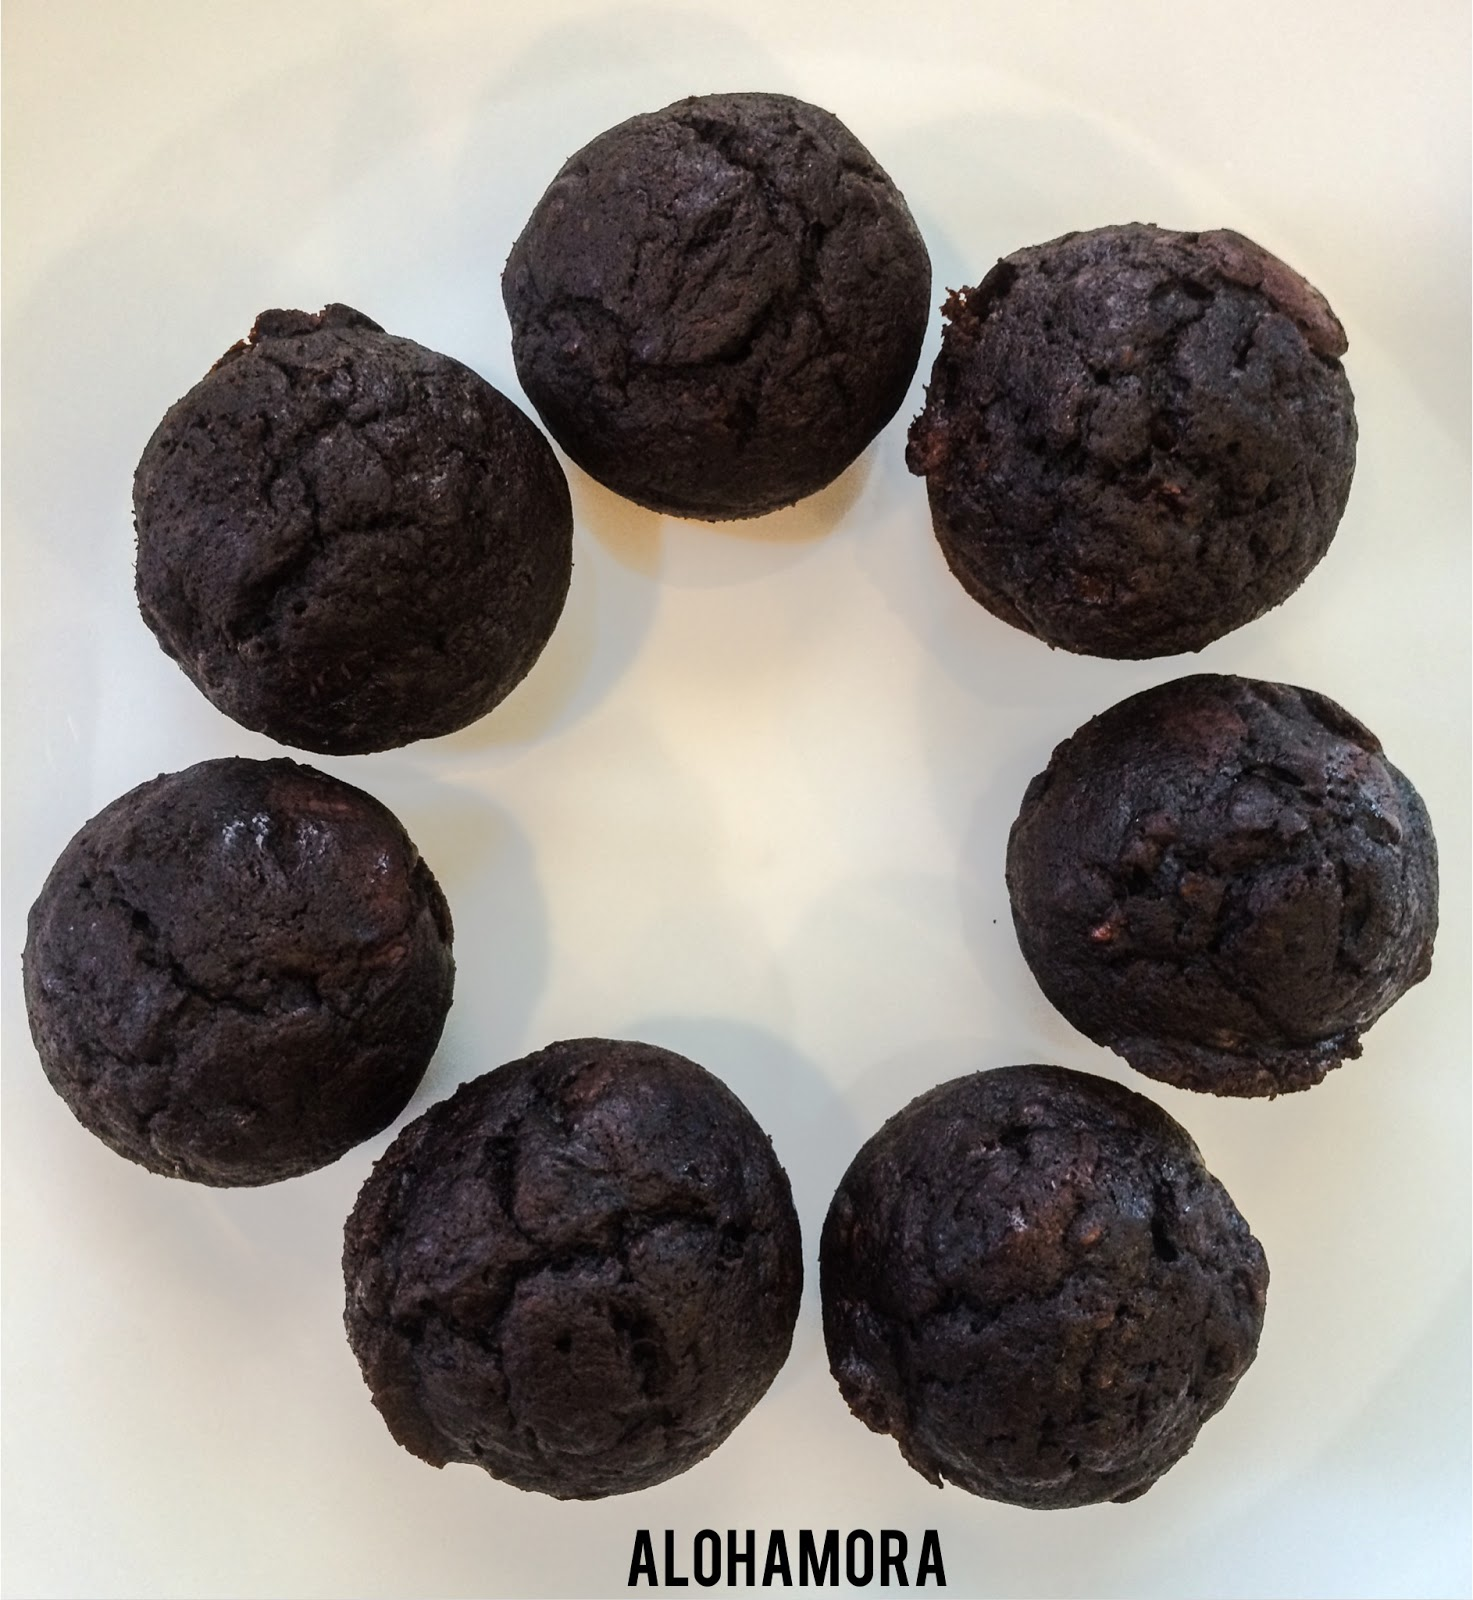 Double Chocolate Banana Bread or Muffin Bites.  Easy to make, uses overripe bananas, freezer friendly, and all around the best way to use those bananas.  Bite size for an easy to grab breakfast.  Alohamora Open a Book http://alohamoraopenabook.blogspot.com/